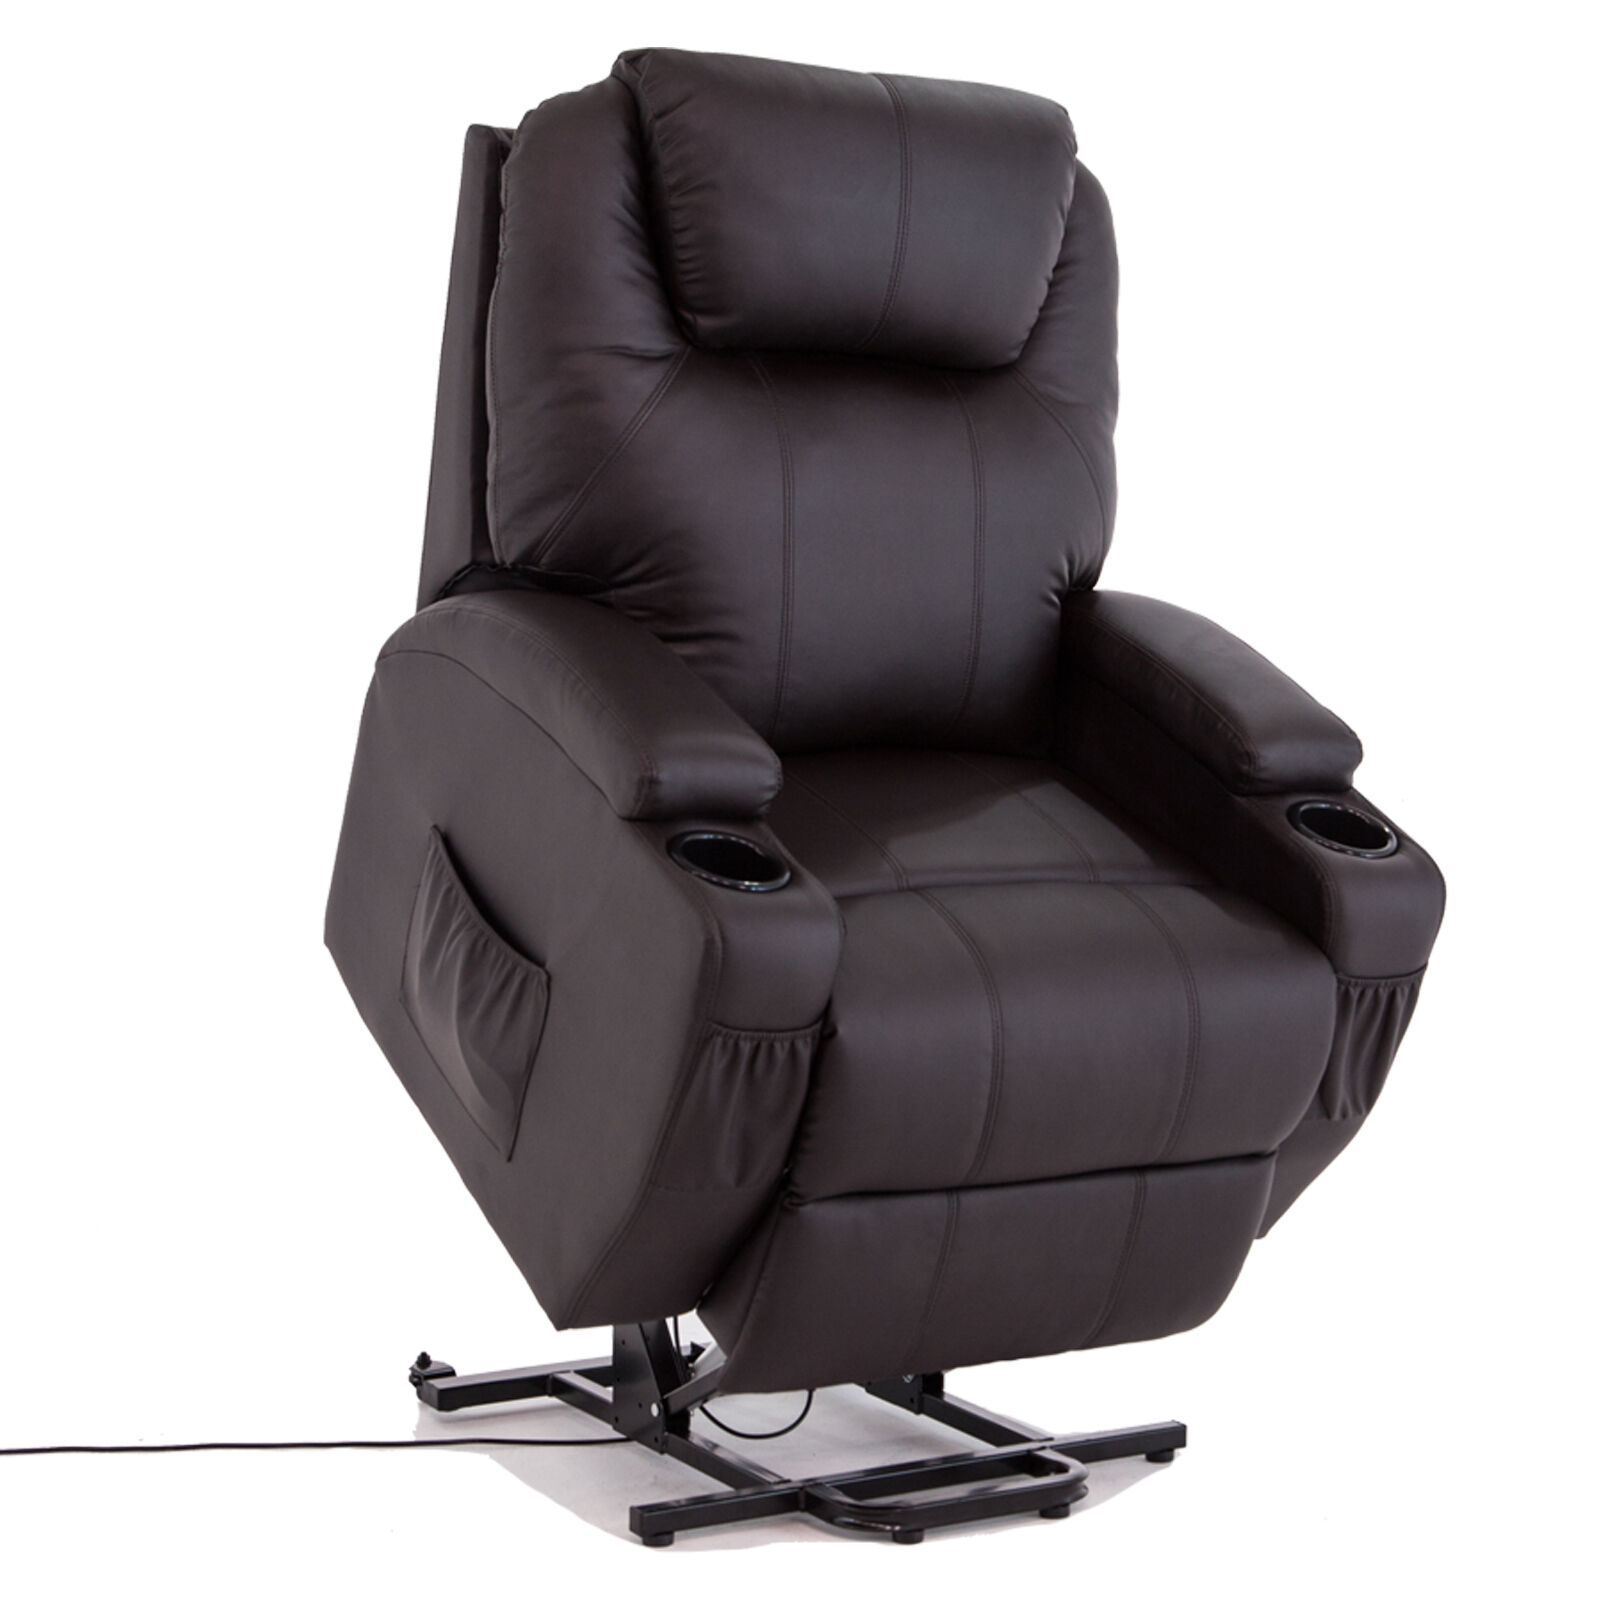 Black Power Lift Recliner Armchair Chair Leather Lounge ...